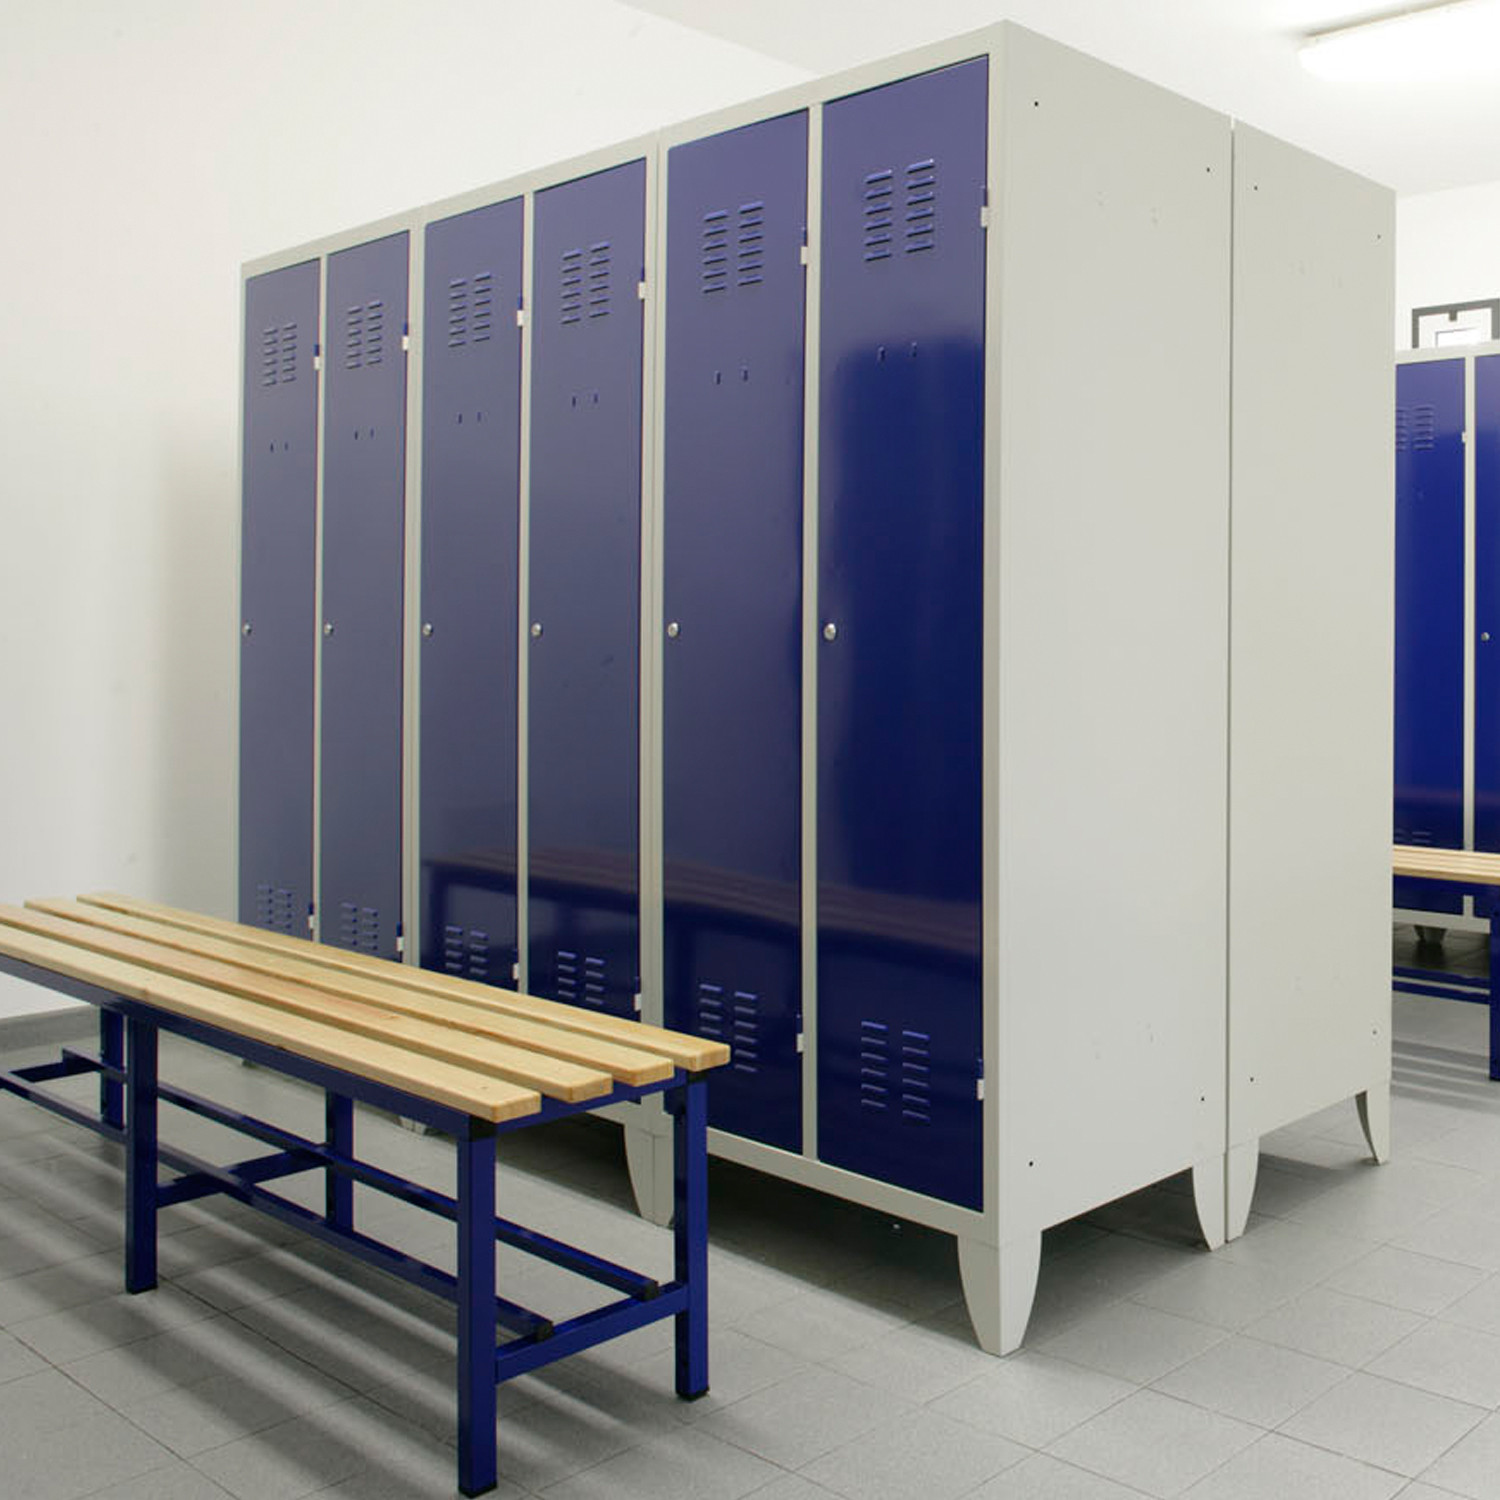 LockerLine Lockers by Dieffebi